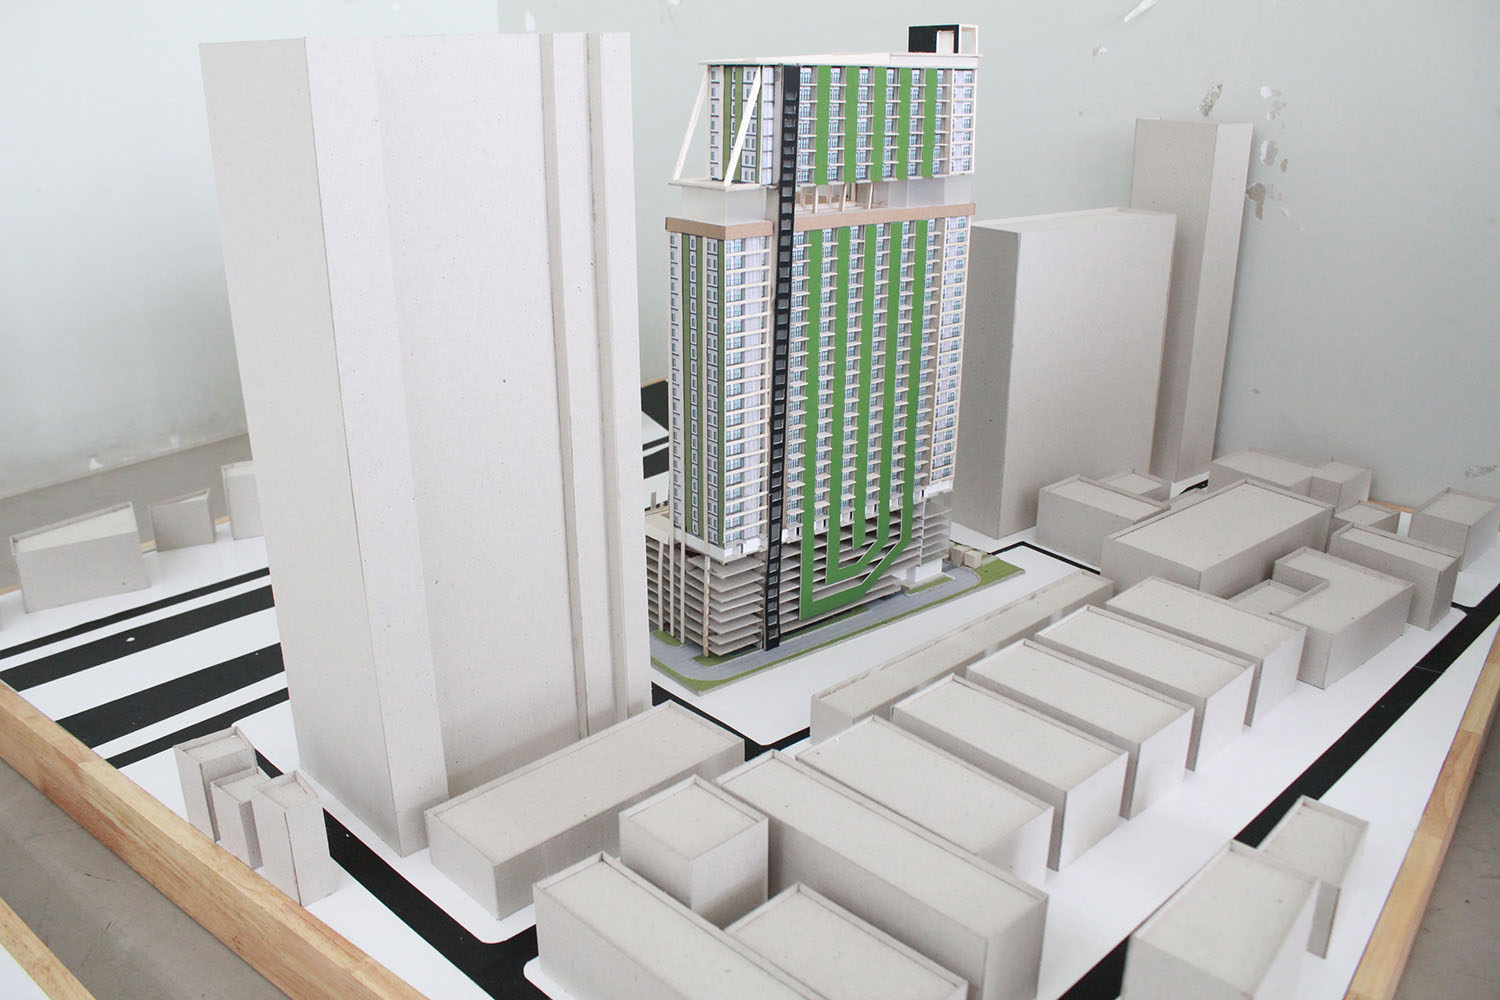 Architecture Thesis Academic Year 2014